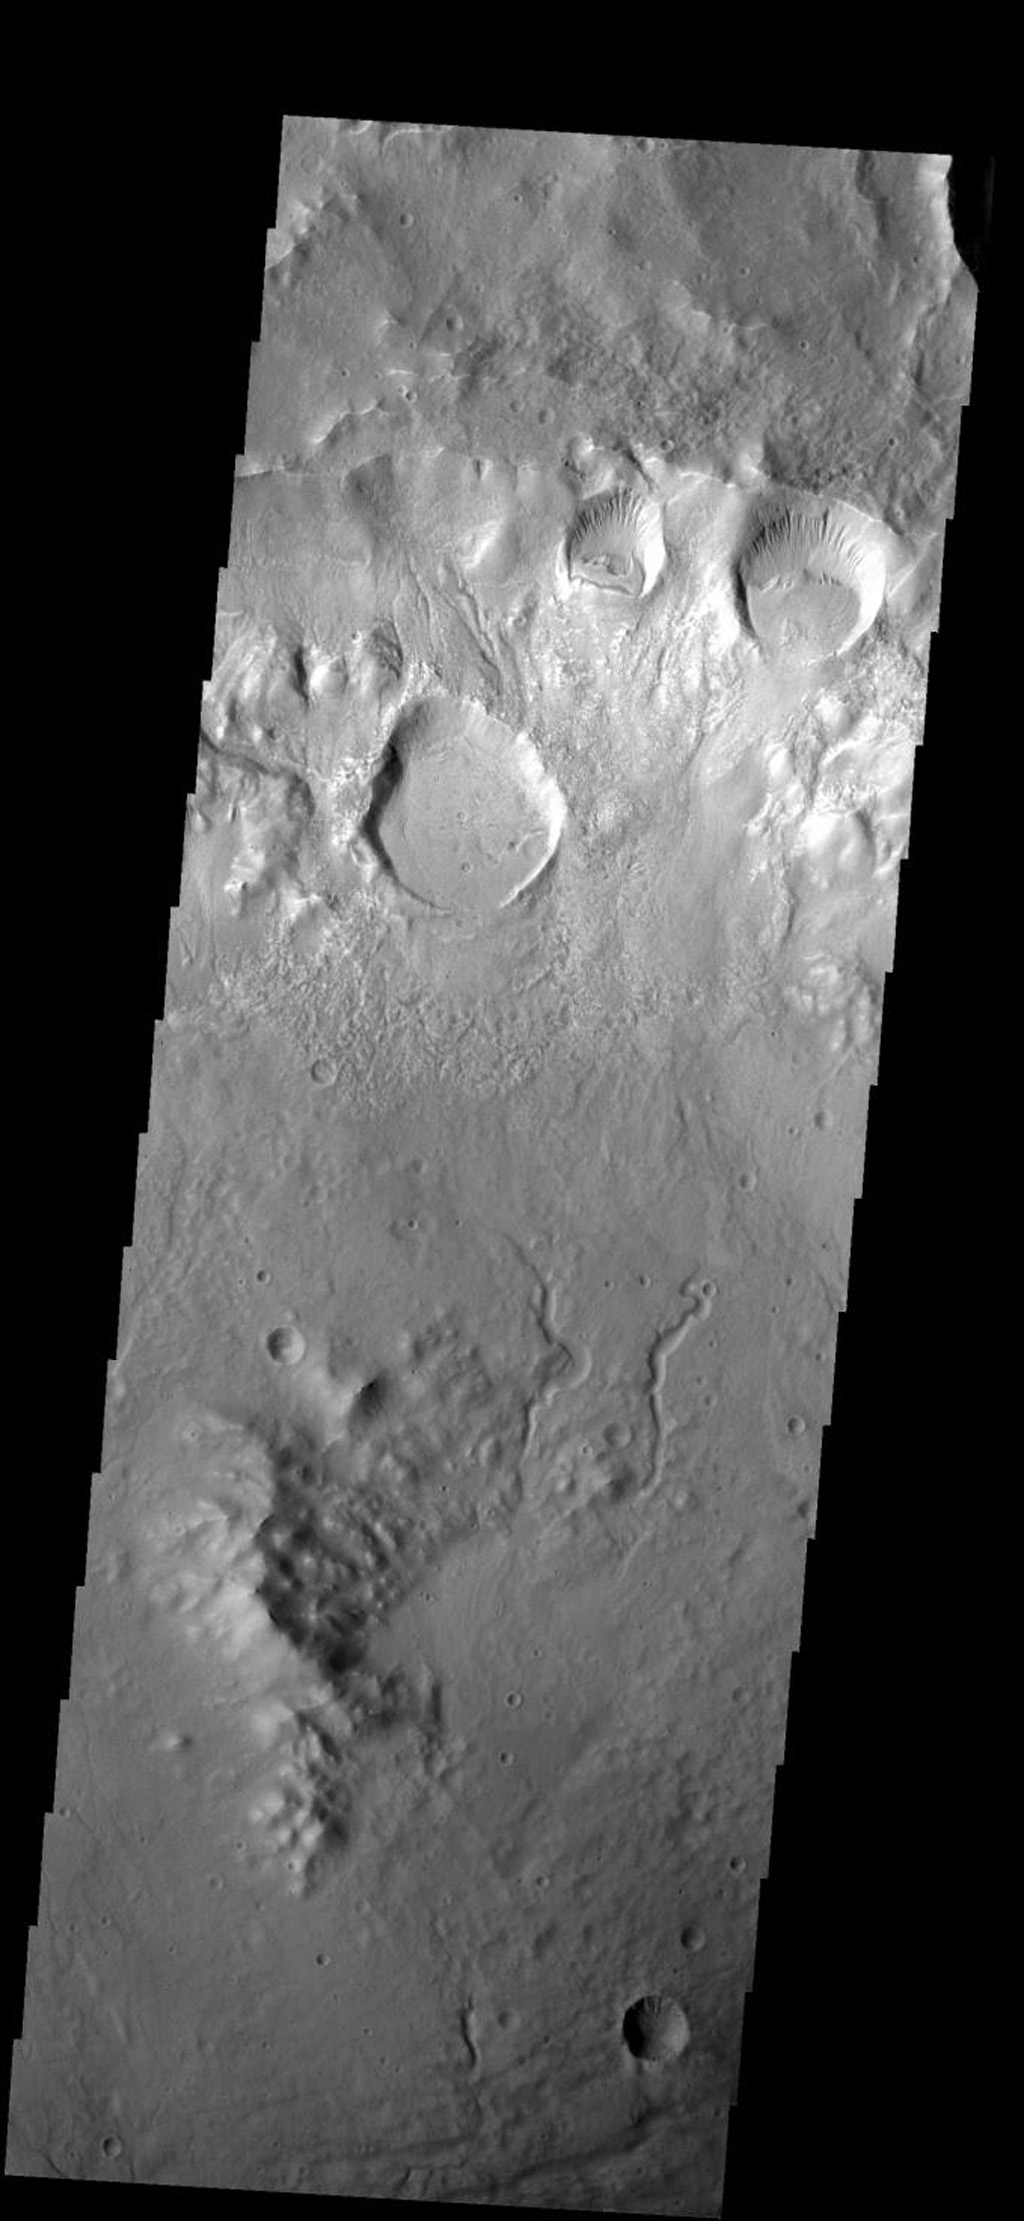 This image from NASA's Mars 2001 Odyssey shows several craters were formed on the rim of this large crater. The movement of material downhill toward the floor of the large crater has formed interesting patterns on the floors of the smaller craters.